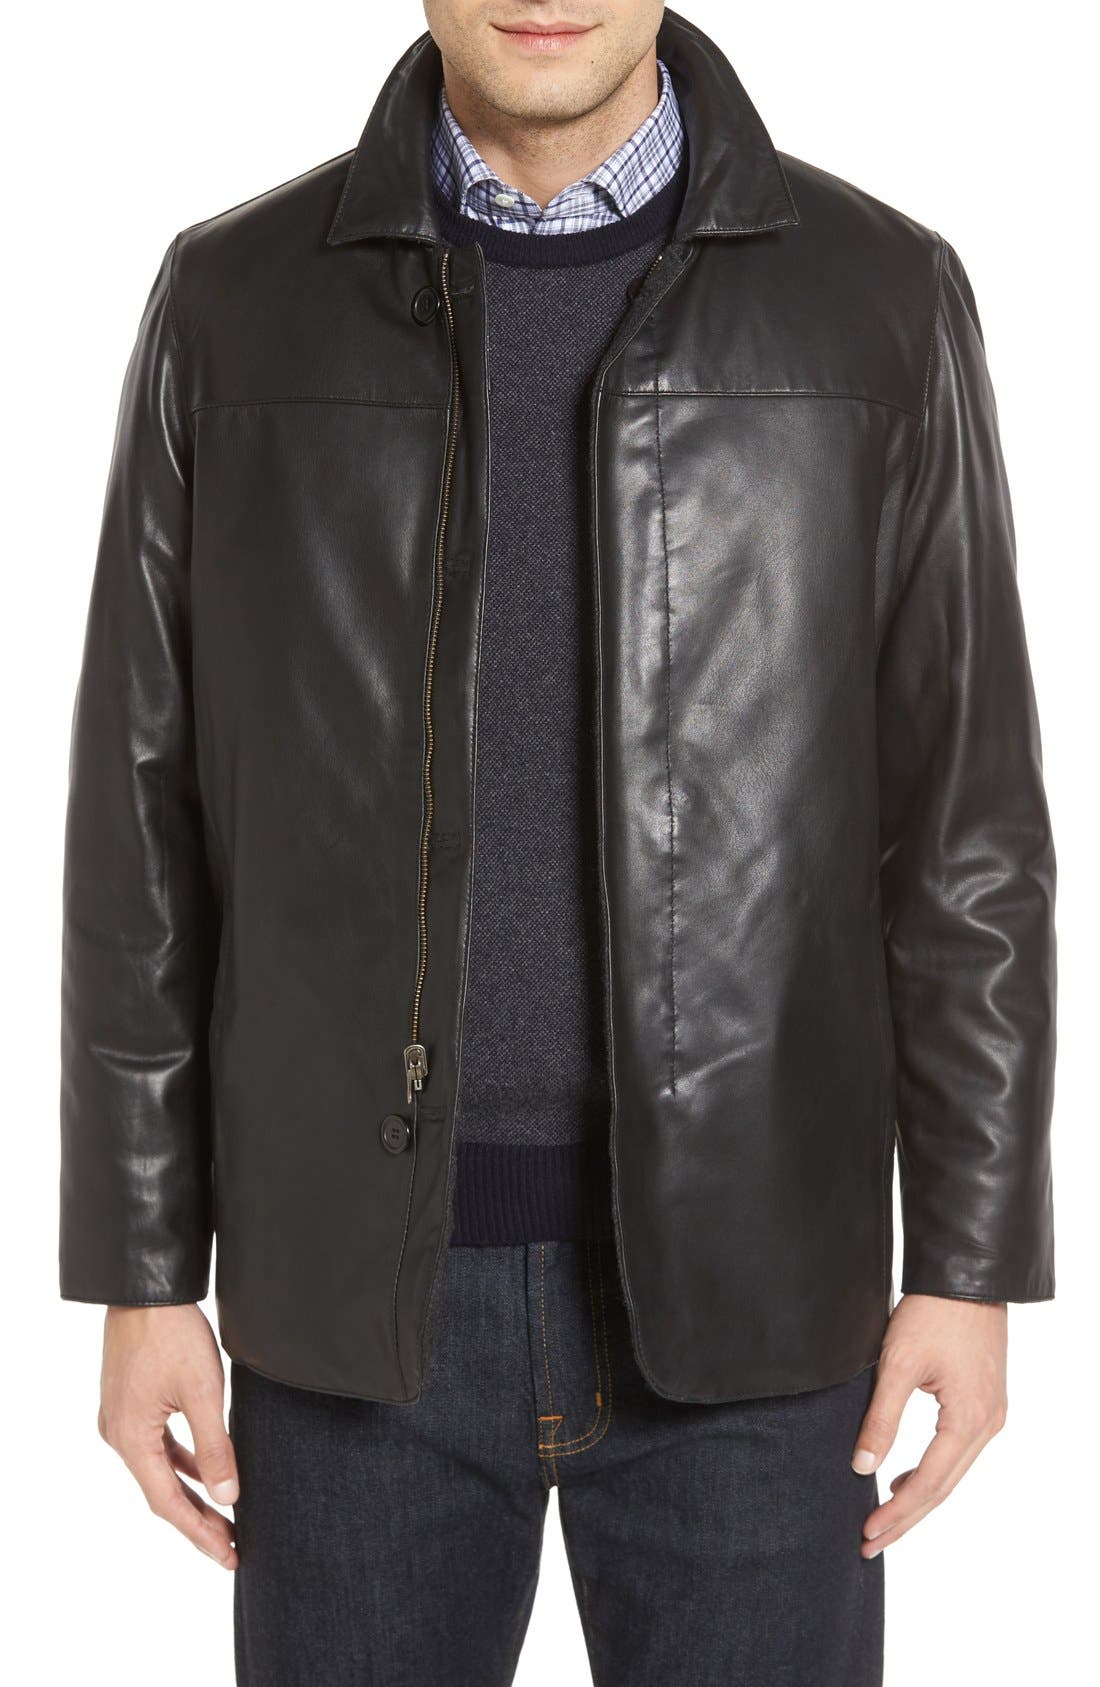 MISSANI LE COLLEZIONI Reversible Lambskin Leather & Quilted Wool Jacket